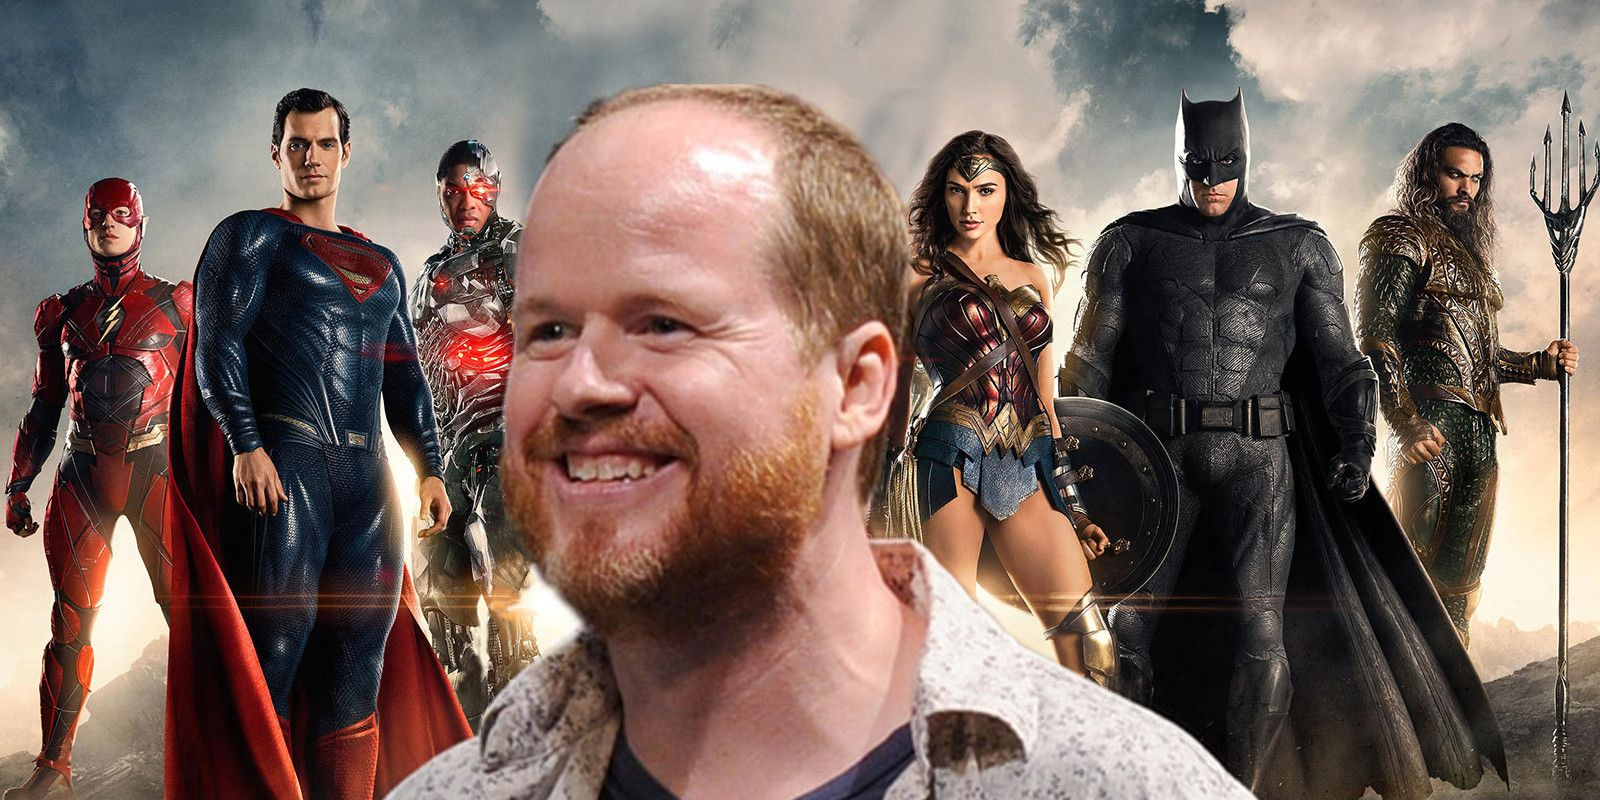 Joss Whedon Keeps Joking About Justice League's Reshoots